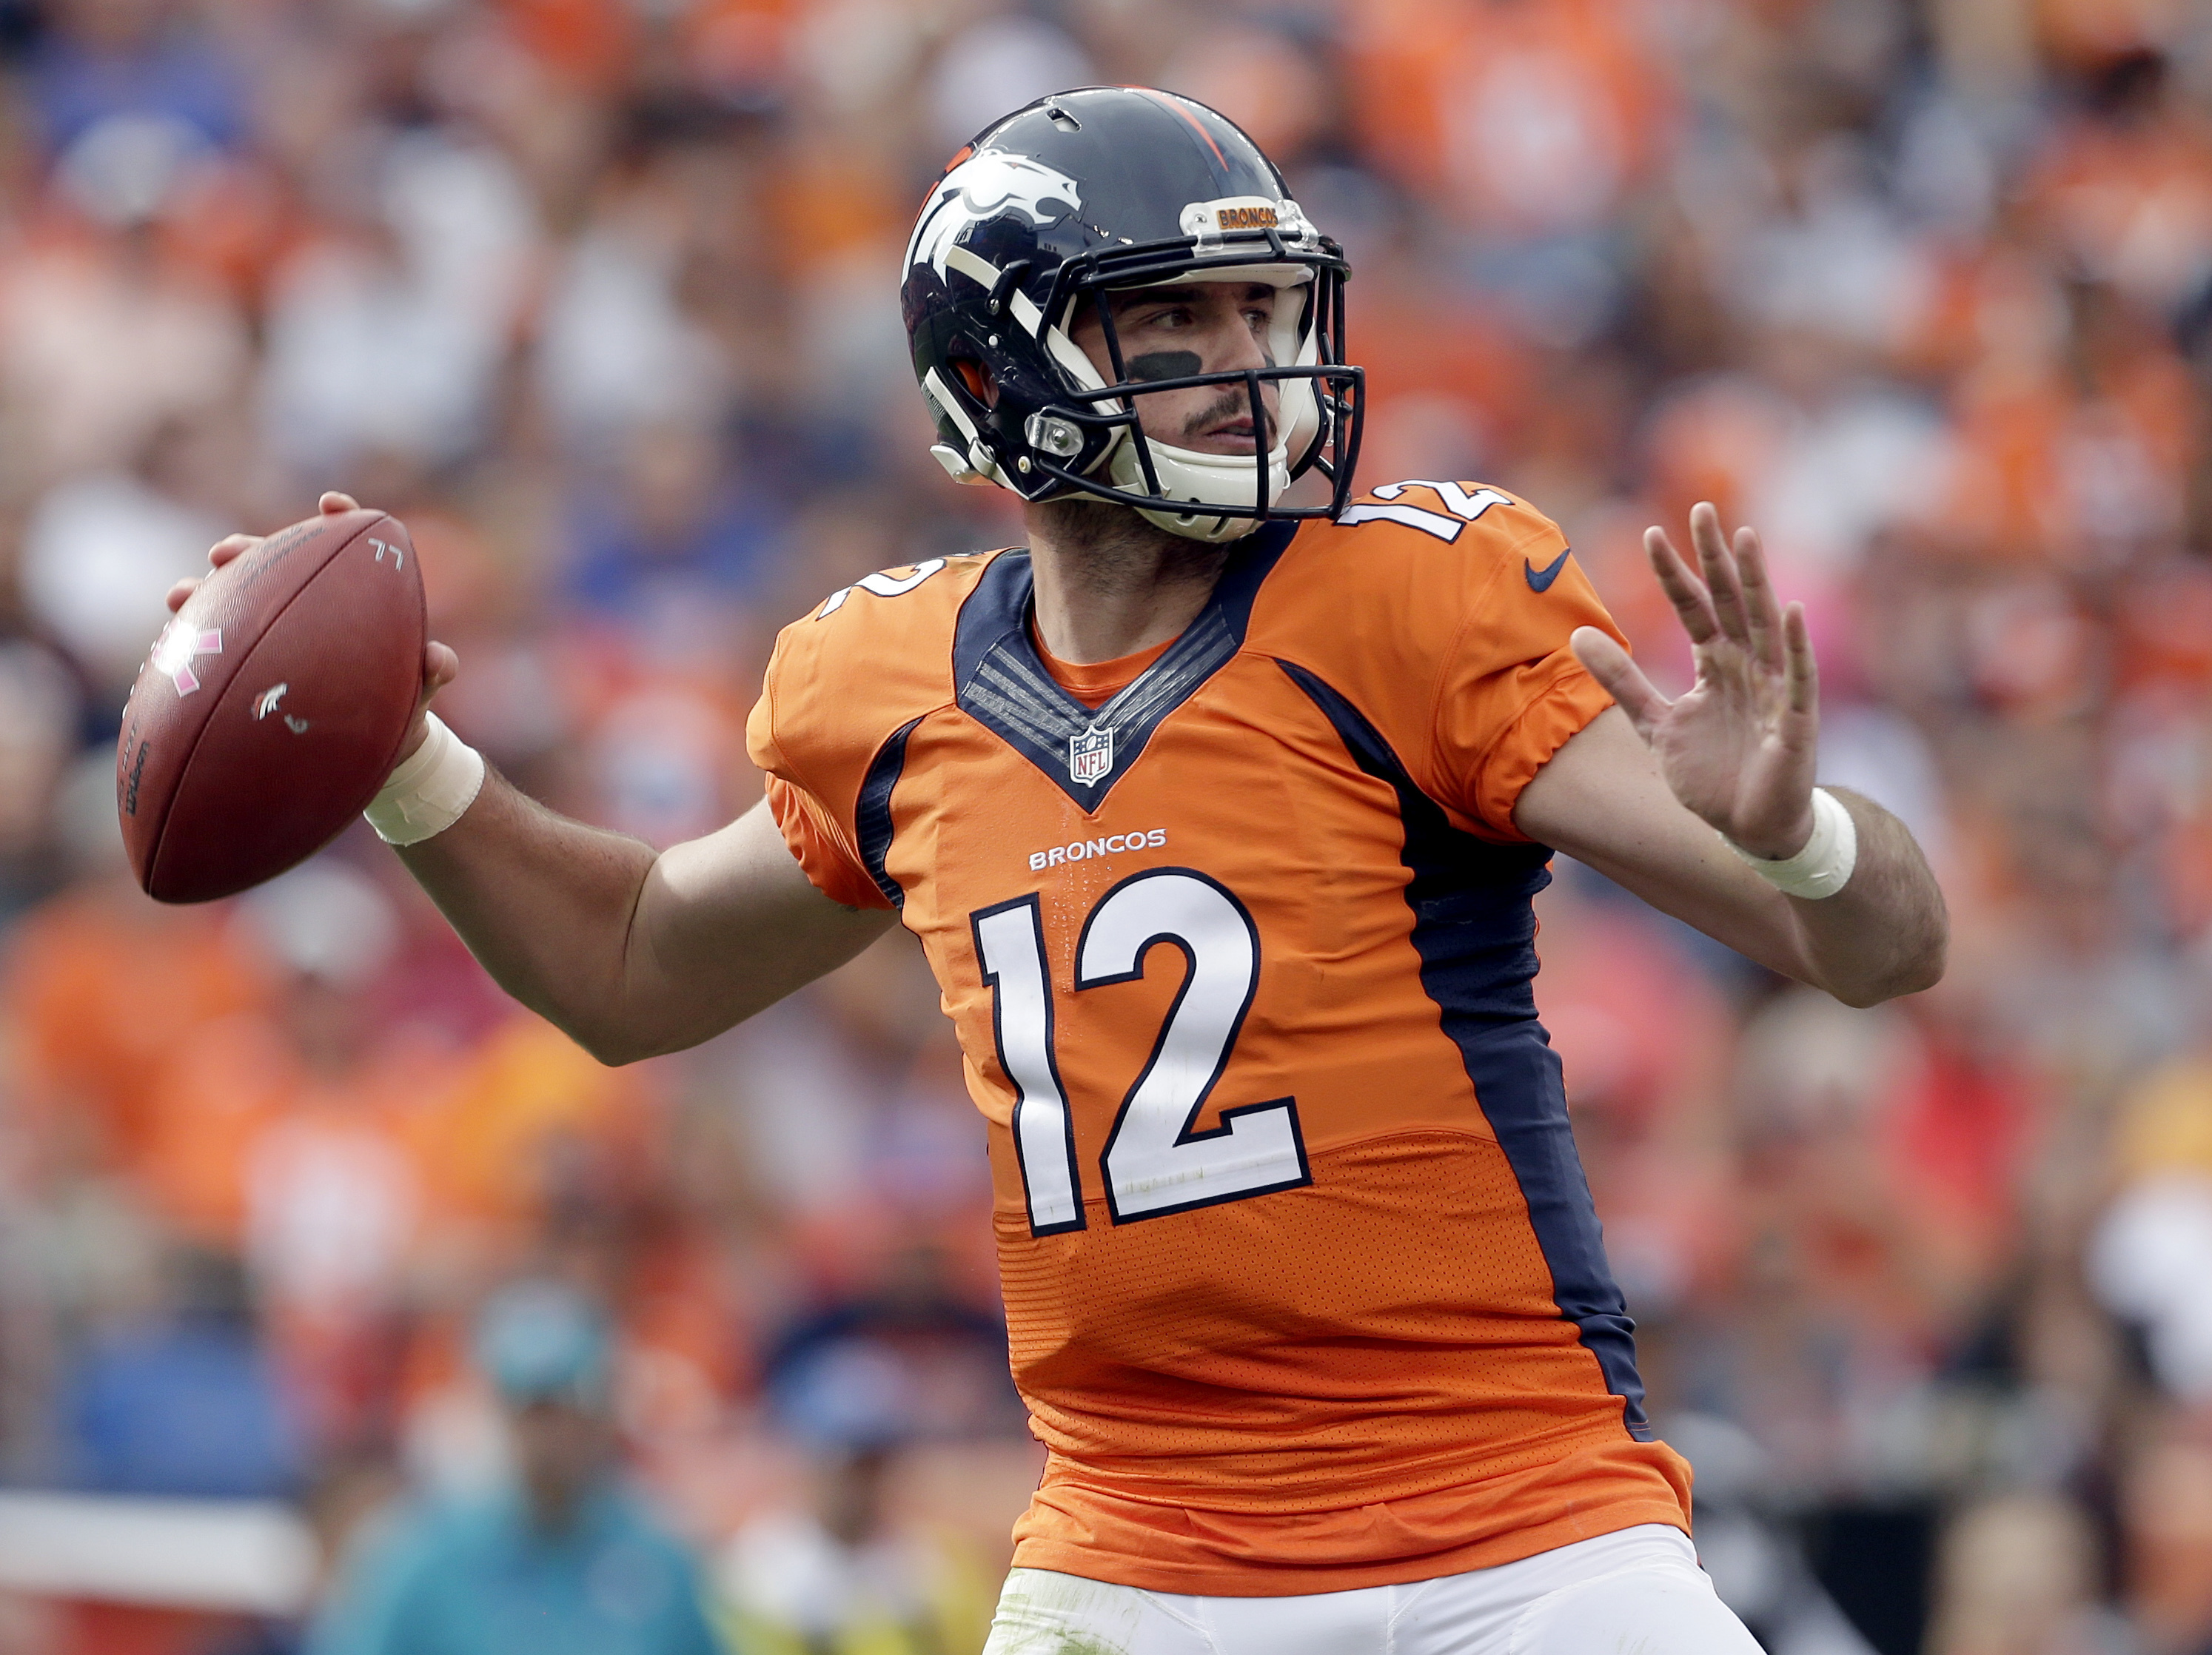 Denver Broncos quarterback Paxton Lynch (12) throws against the Atlanta Falcons during the first half of an NFL football game, Sunday, Oct. 9, 2016, in Denver. (AP Photo/Joe Mahoney)